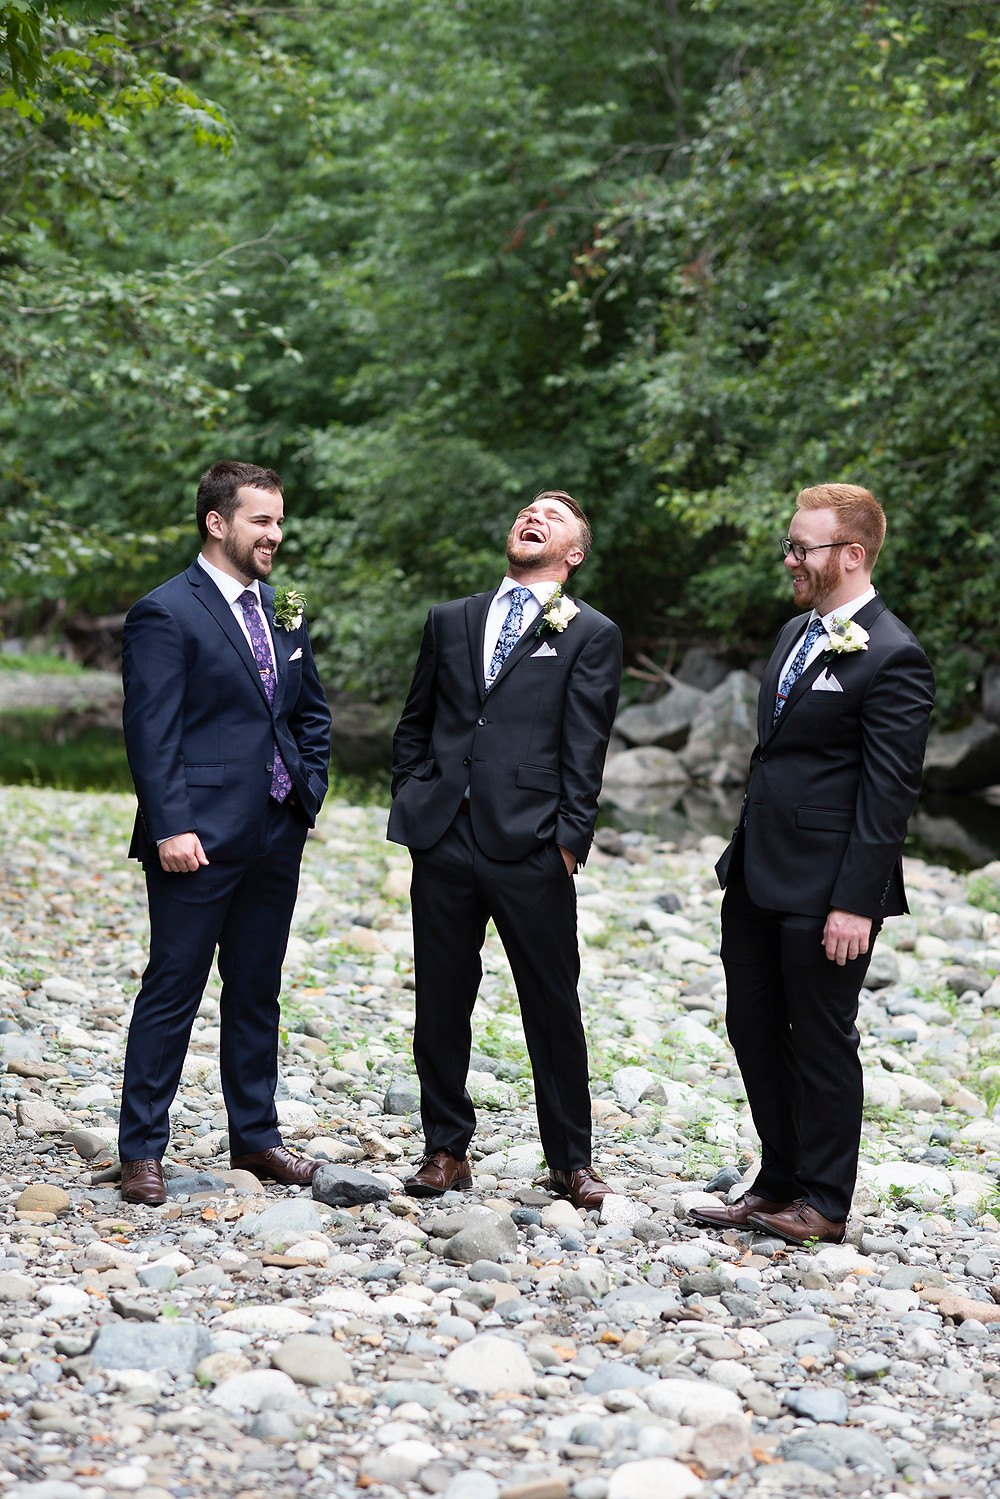 Groom and groomsmen at Vancouver Island wedding in August. Photographed by Kaitlyn Shea.